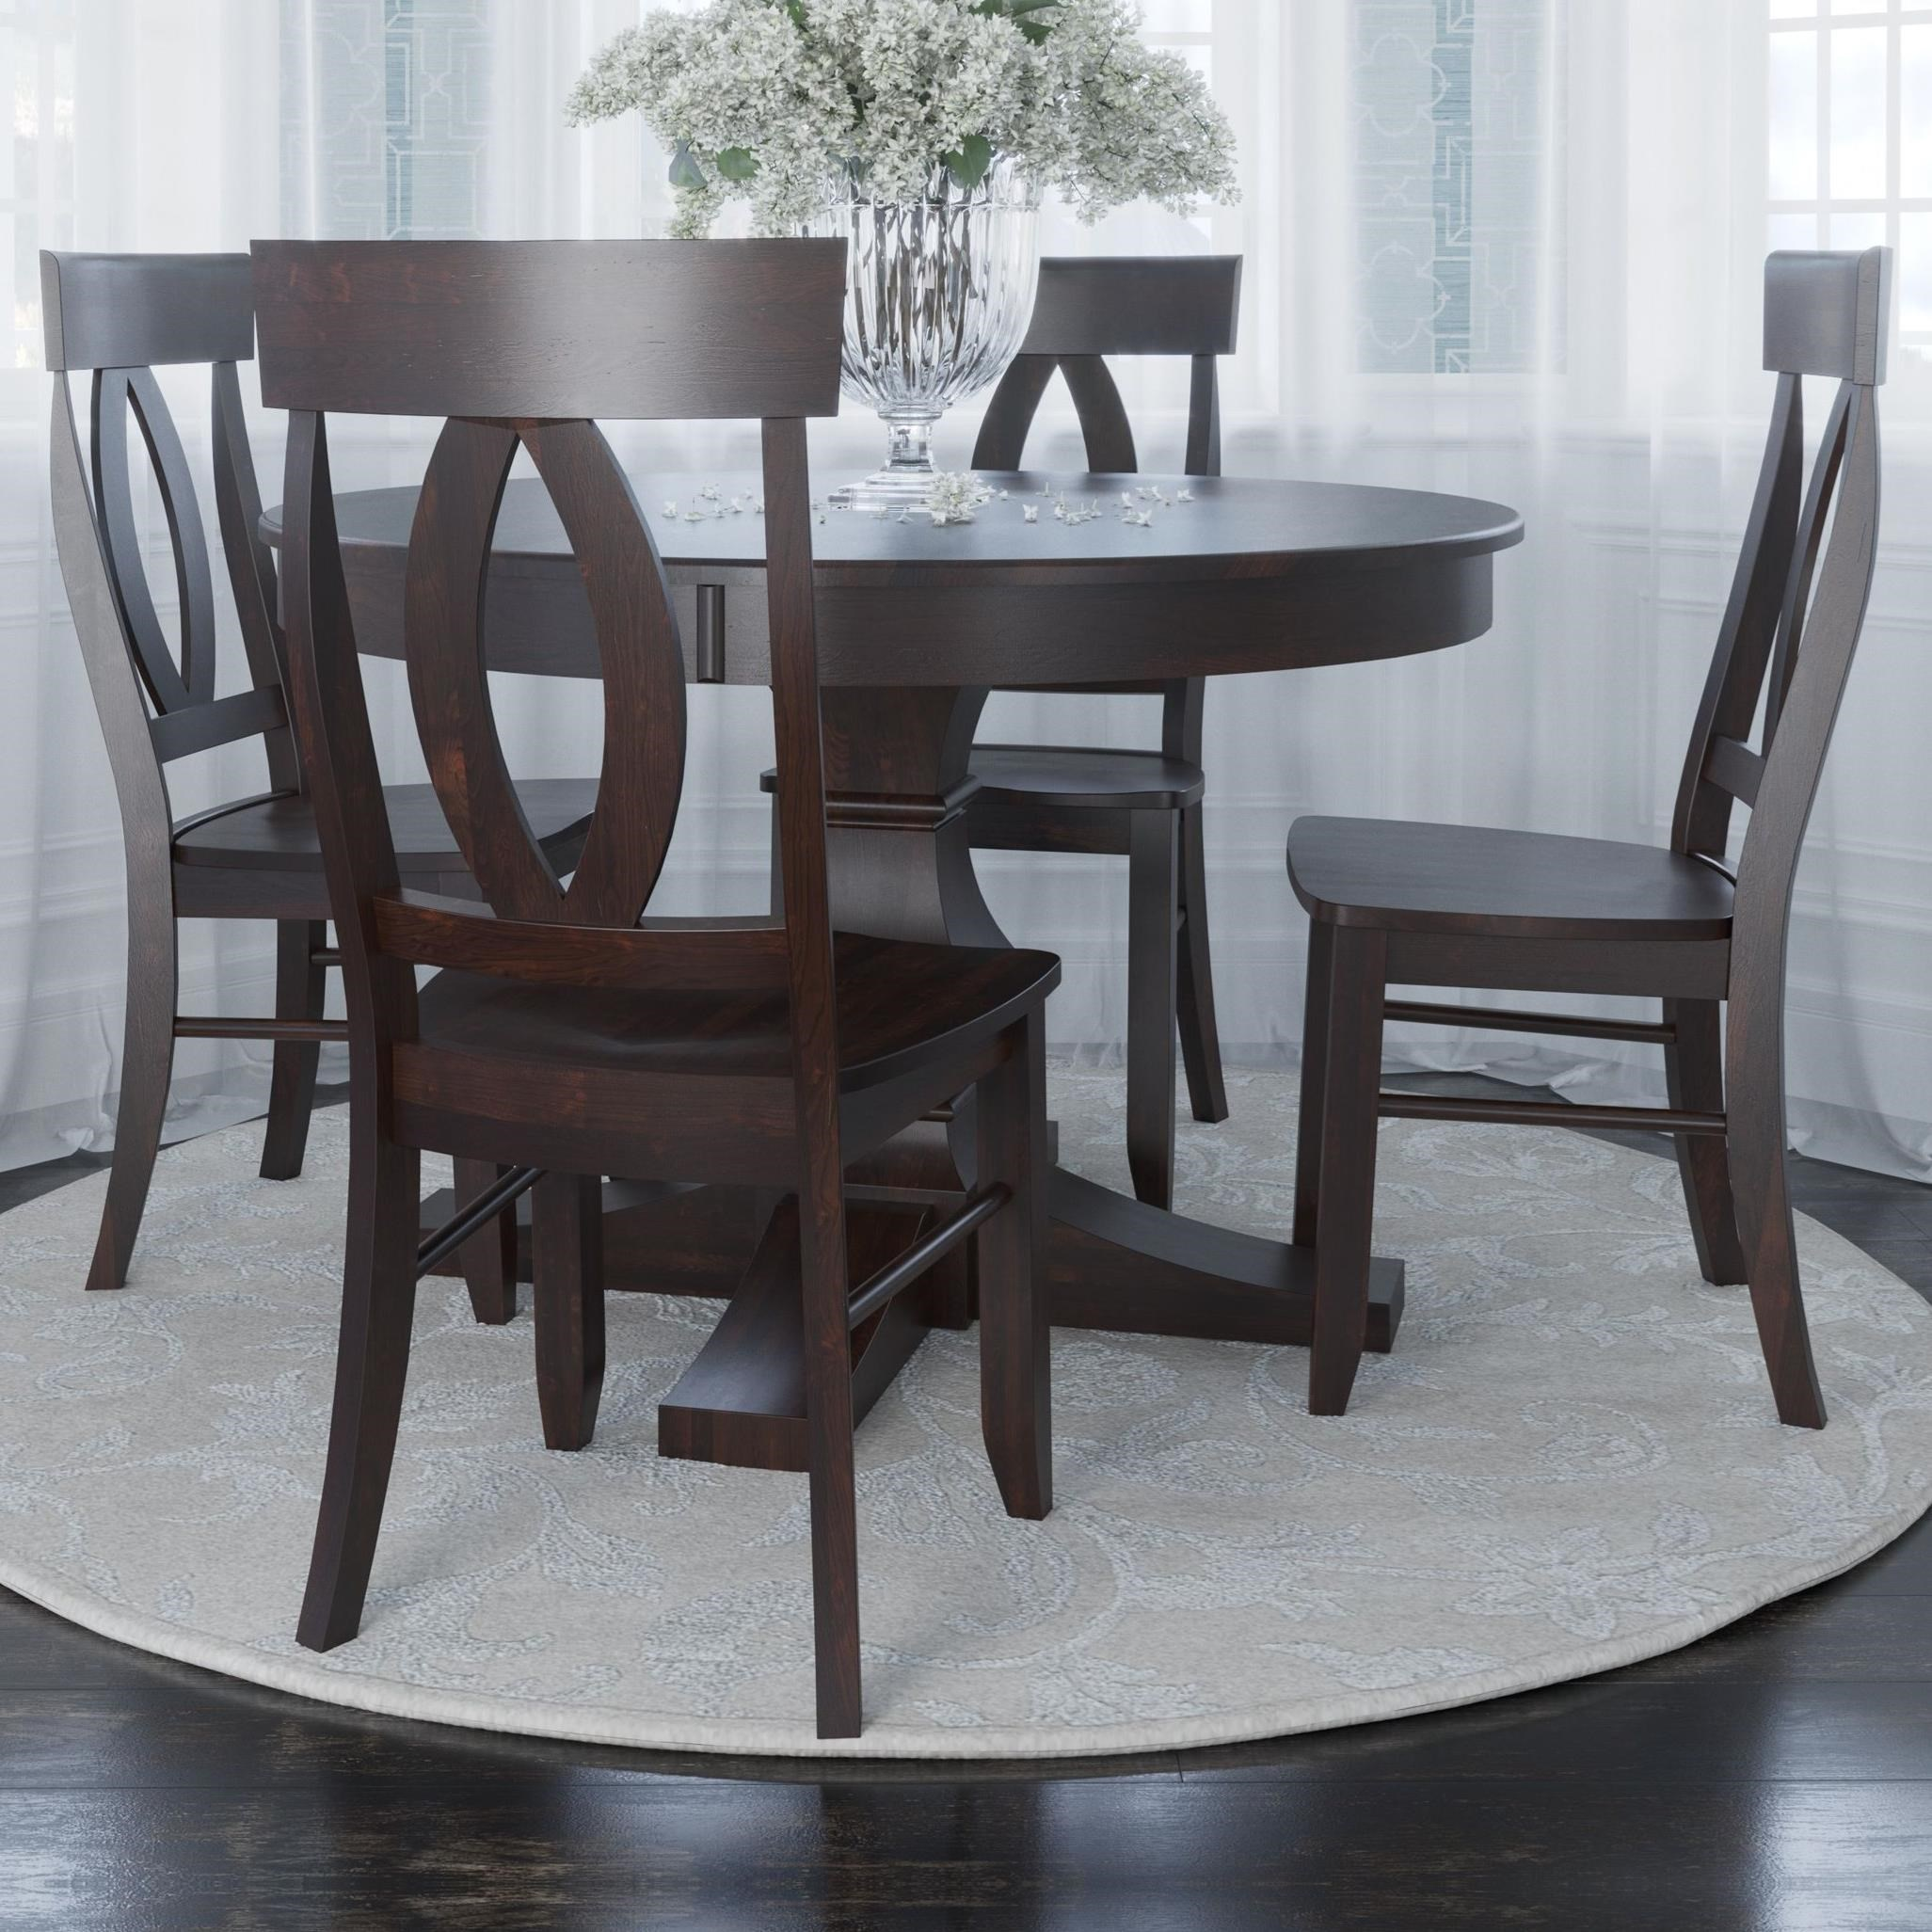 Customizable 5-Piece Round Dining Table Set